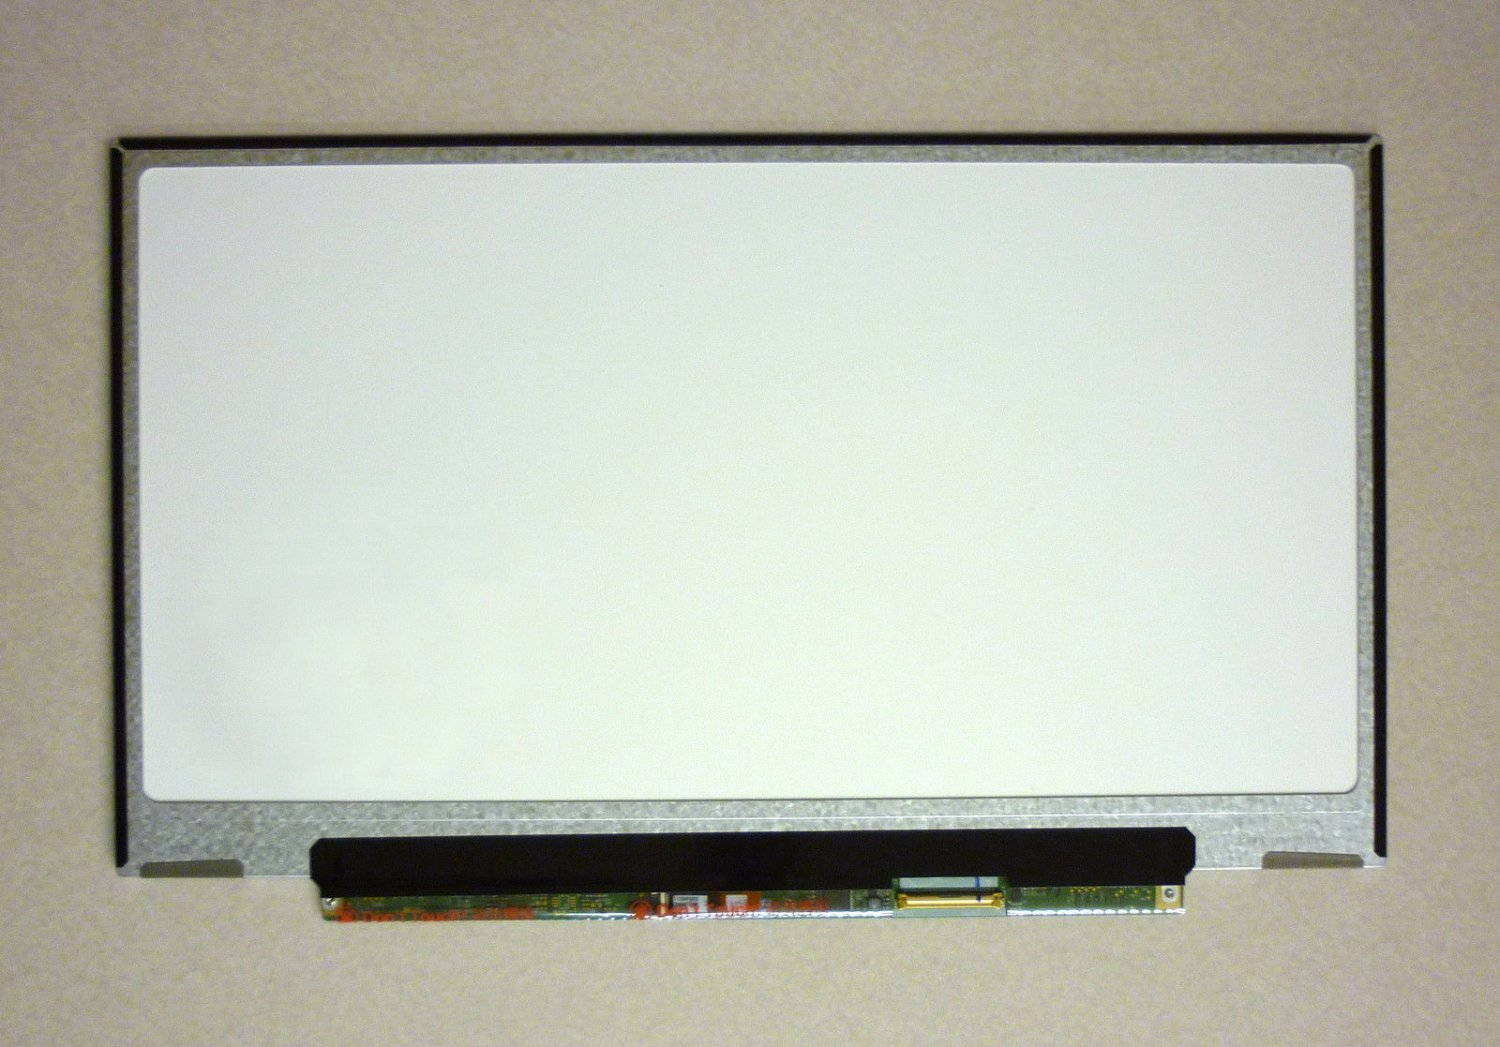 "Laptop Lcd Screen For Lg Philips Lp133wh2(Tl)(L4) 13.3"" Wxga Hd"